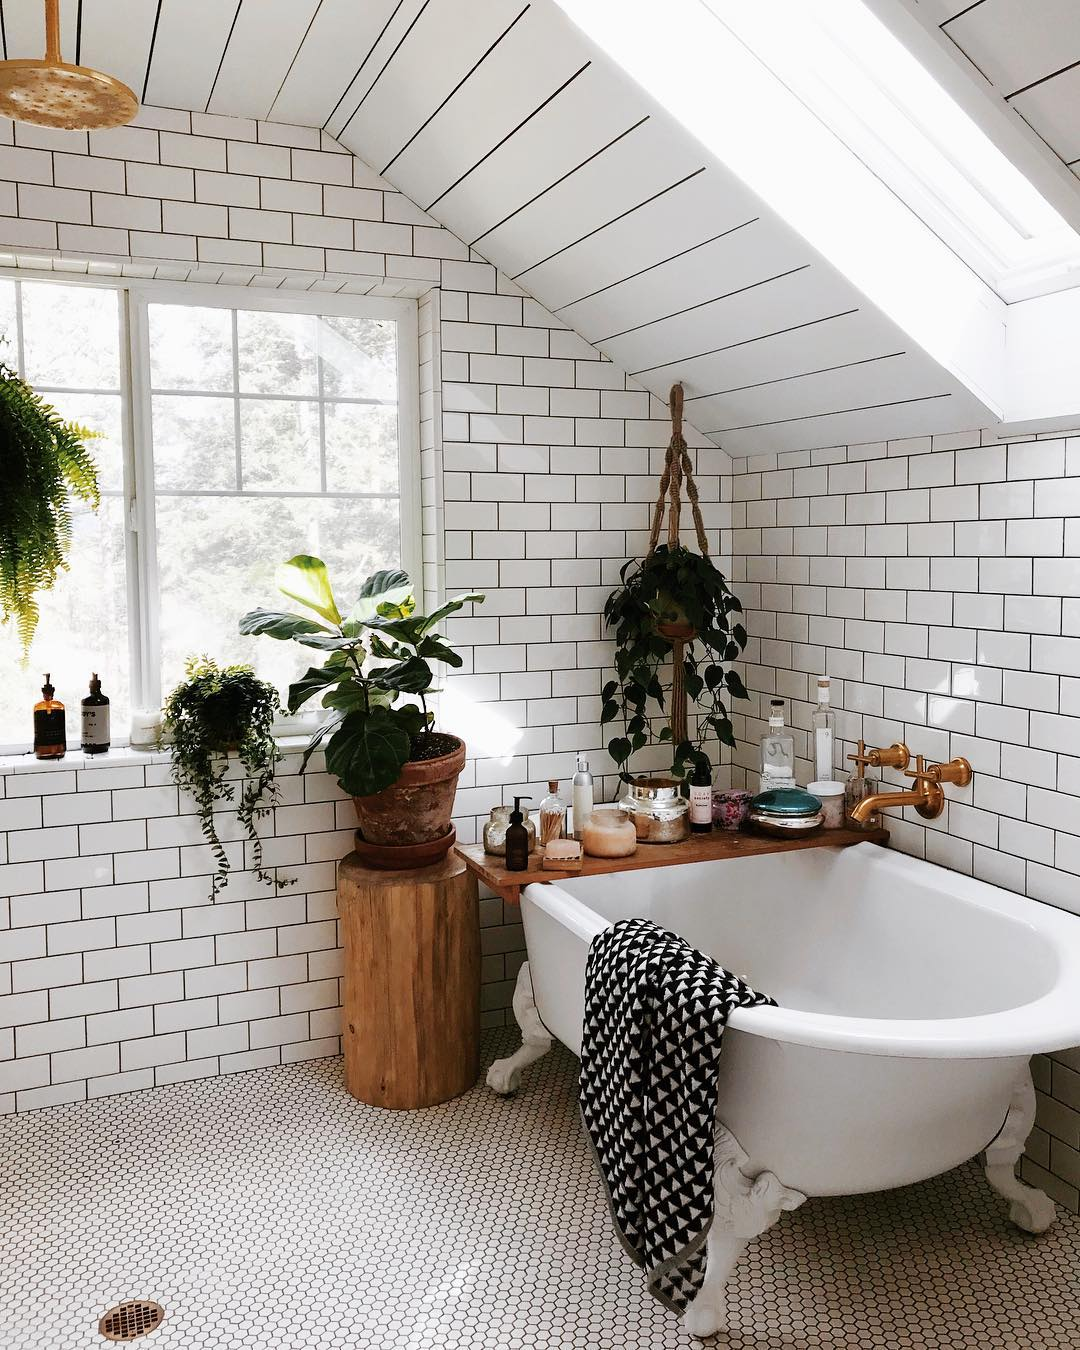 Yes, You Should Turn Your Bathroom Into a Lush, Plant-Filled Retreat — Here's How | Hunker